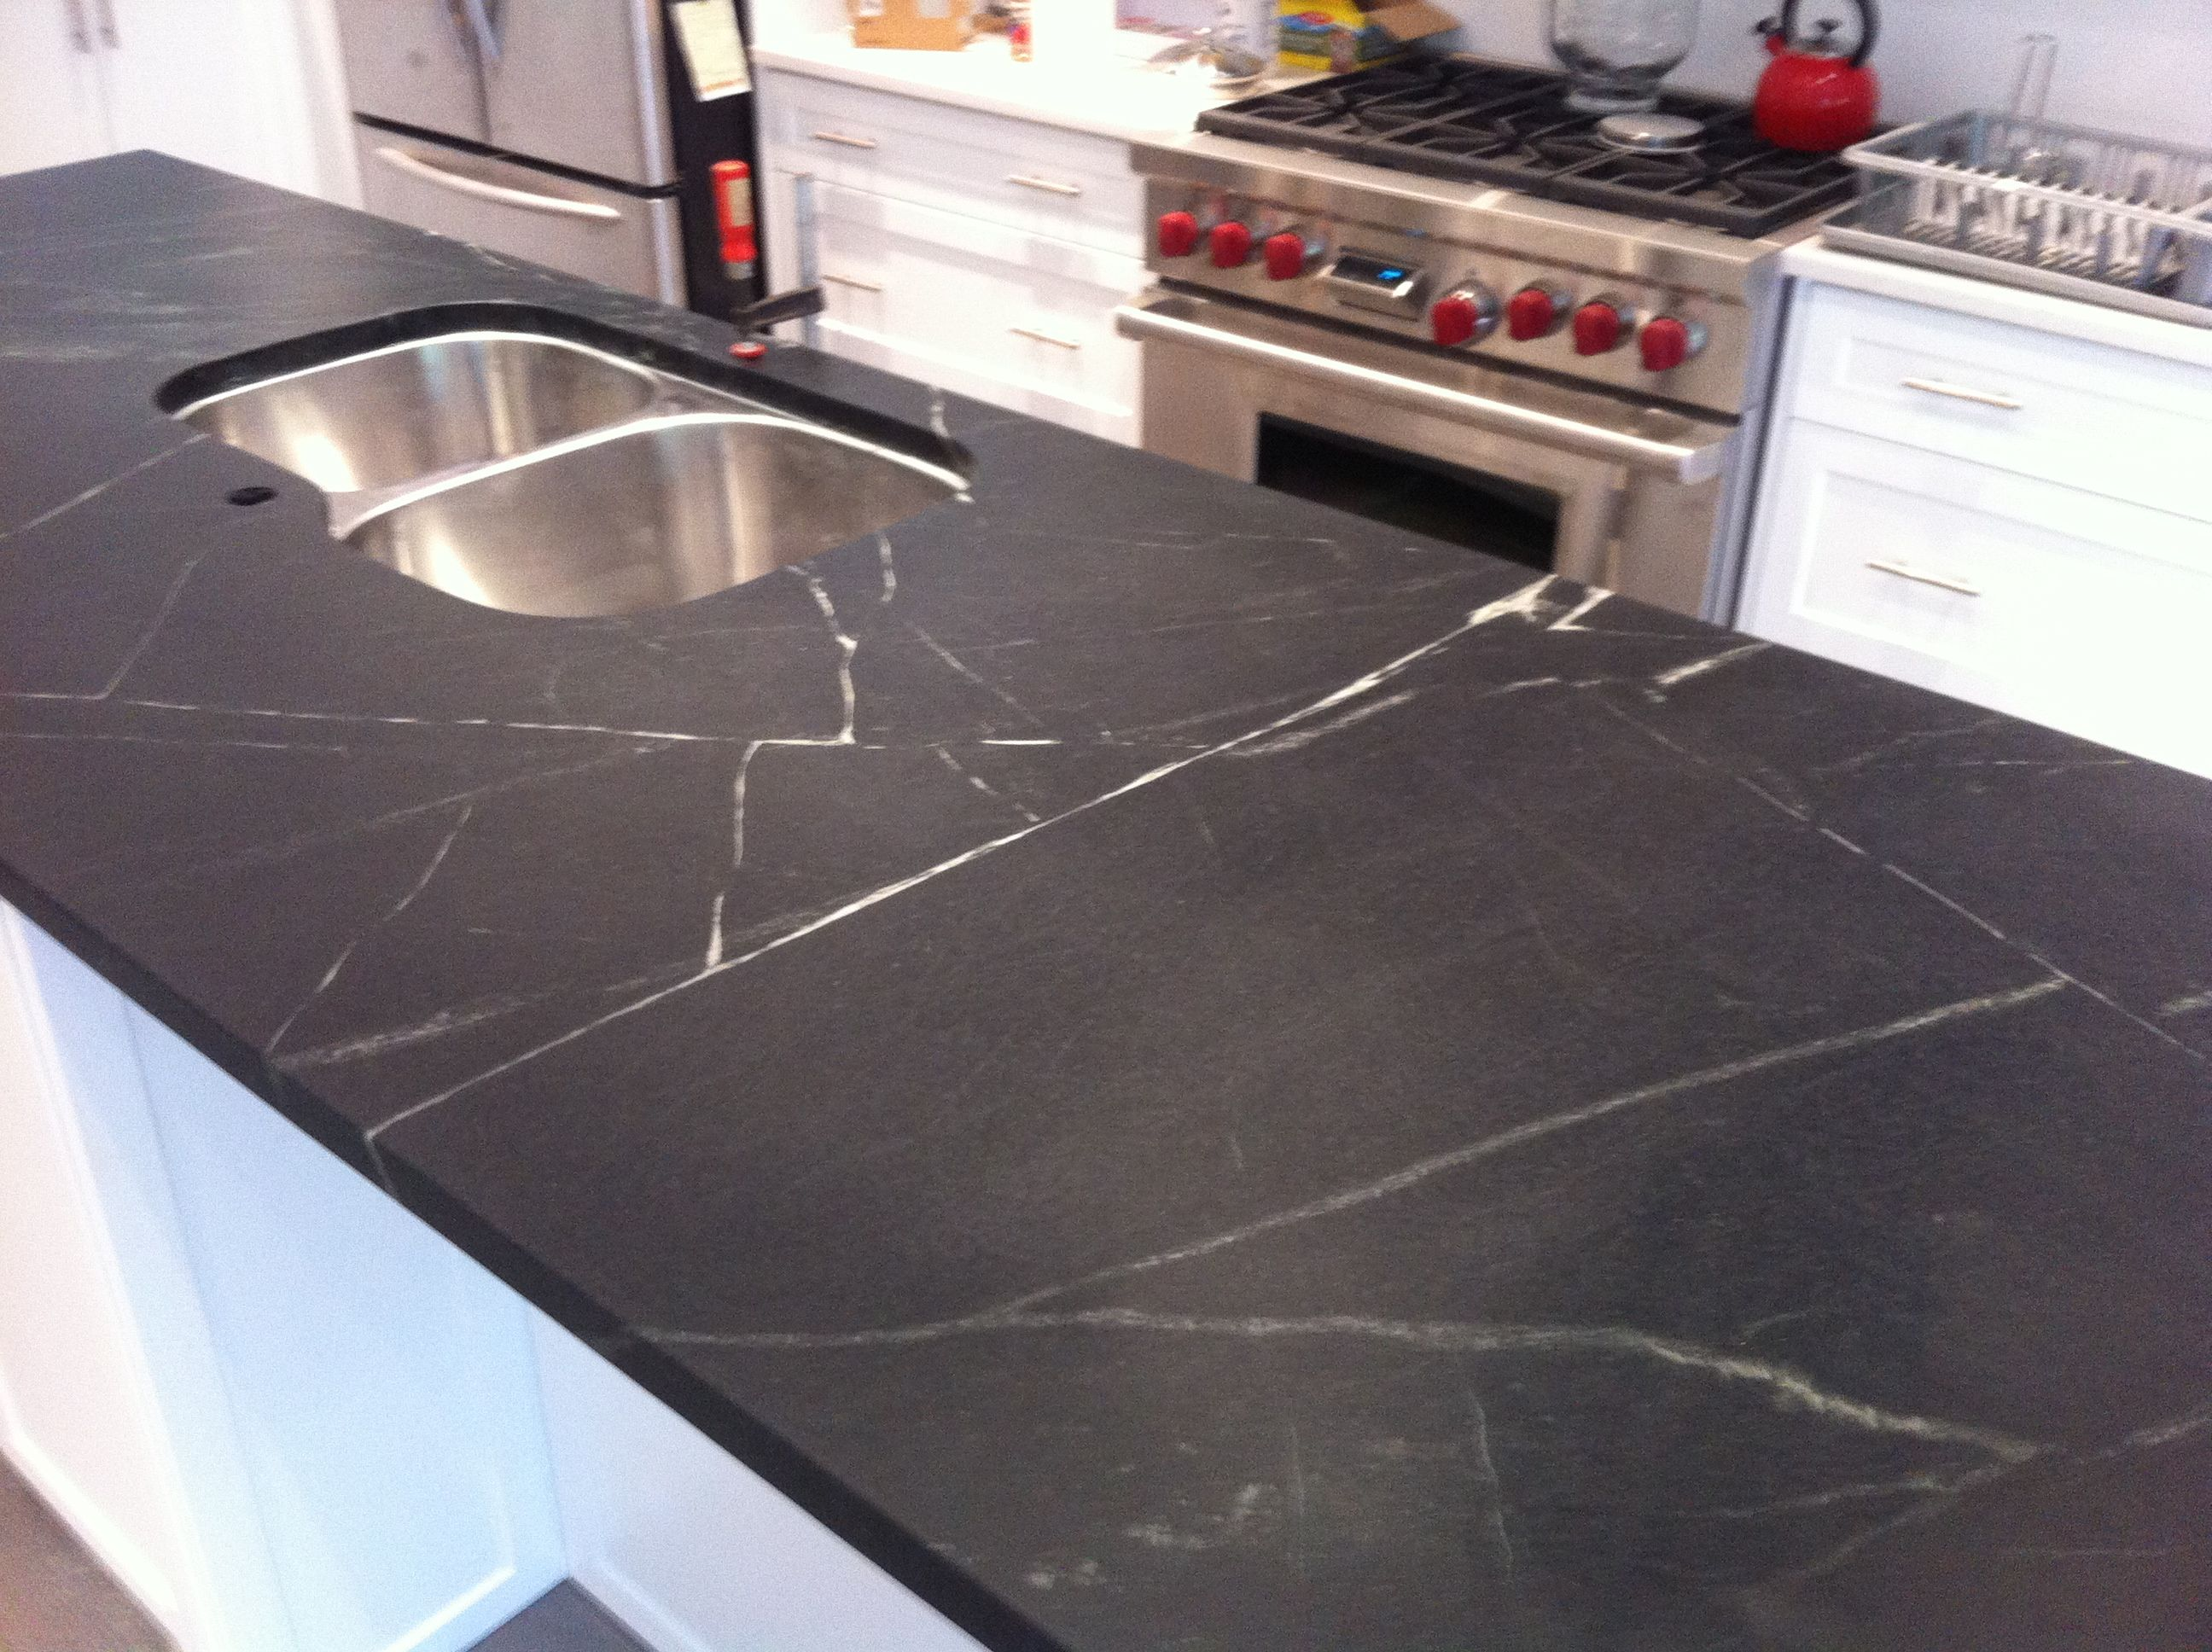 Top 15 Soapstone Countertops You Can In Soapstone Countertops Soapstone Kitchen Countertops